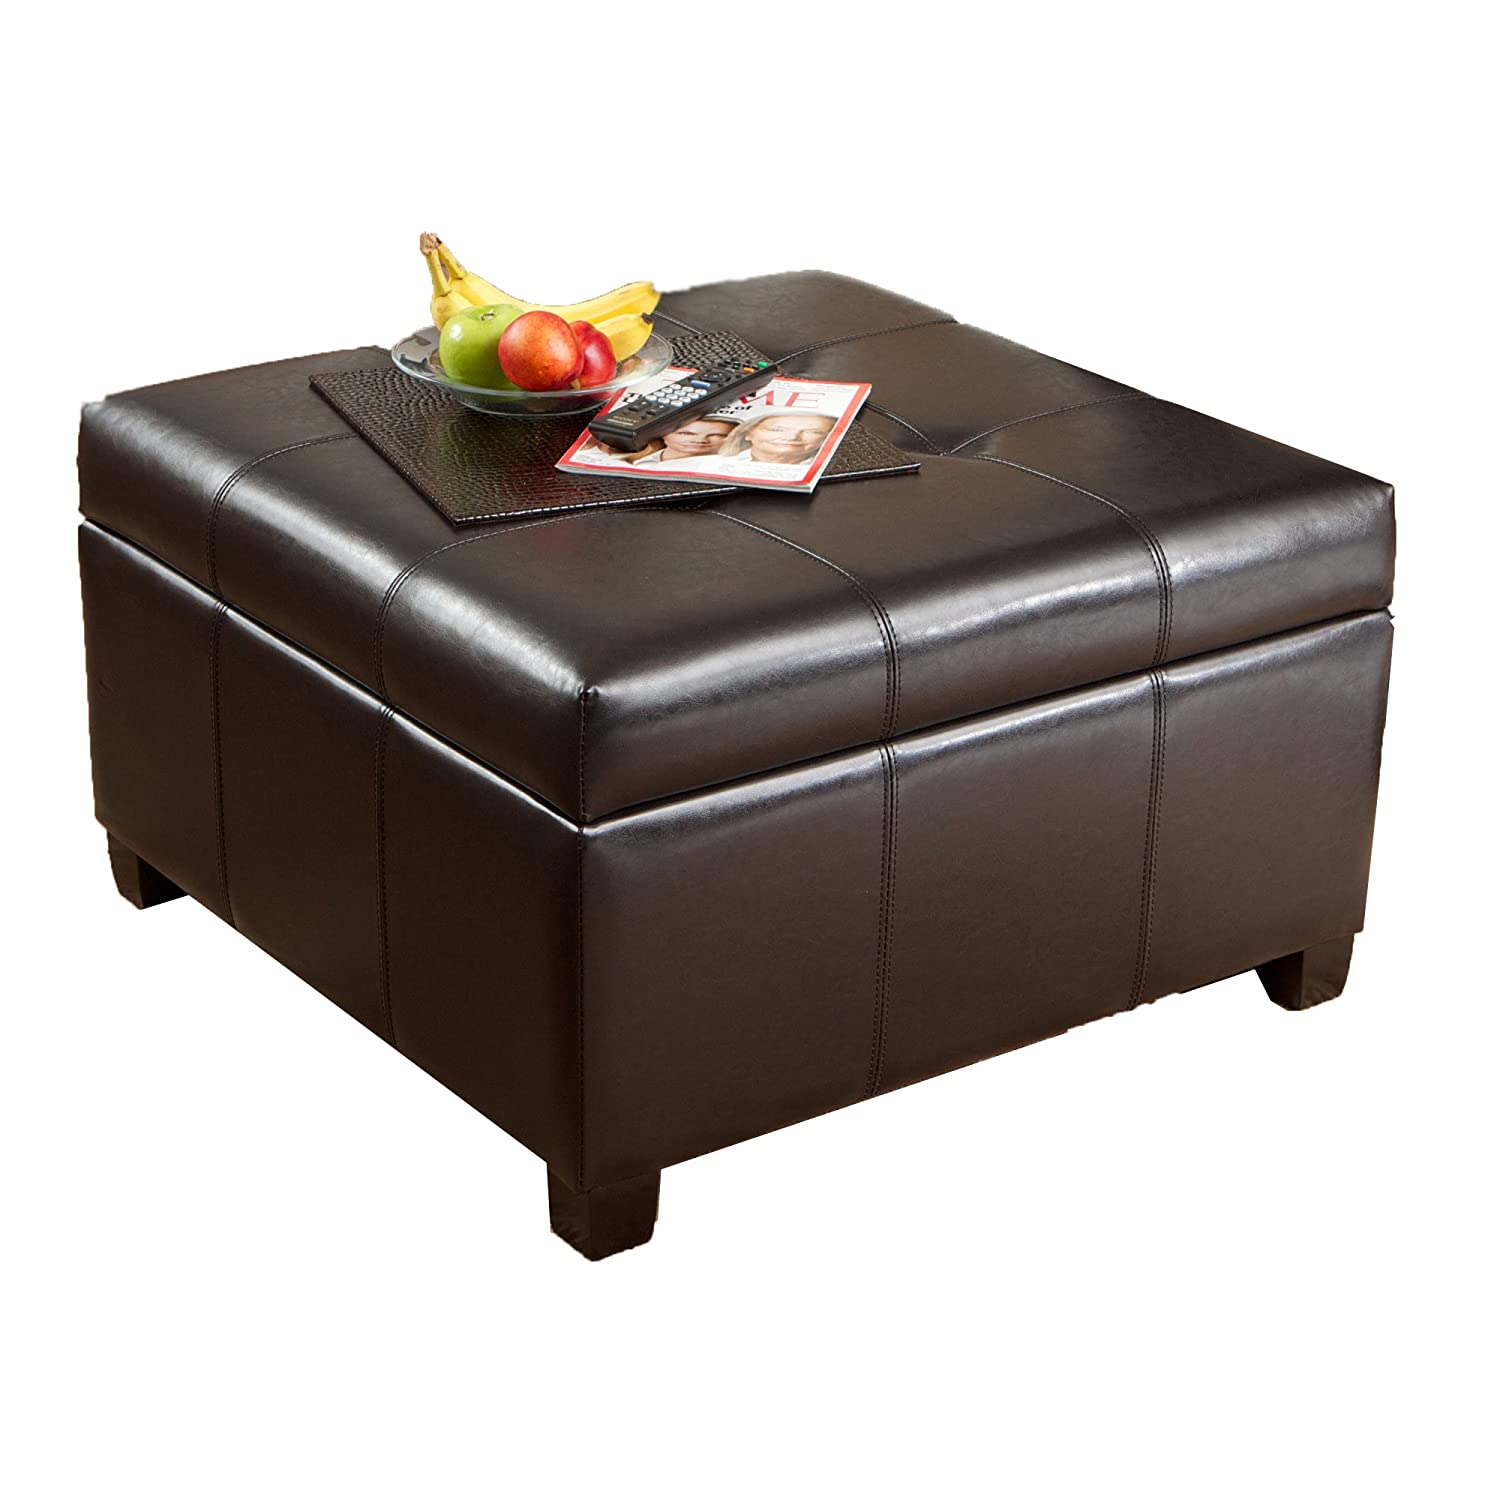 hartley with garratt square black ottoman sophisticated coffee tables side o tray storage ottomans table leather